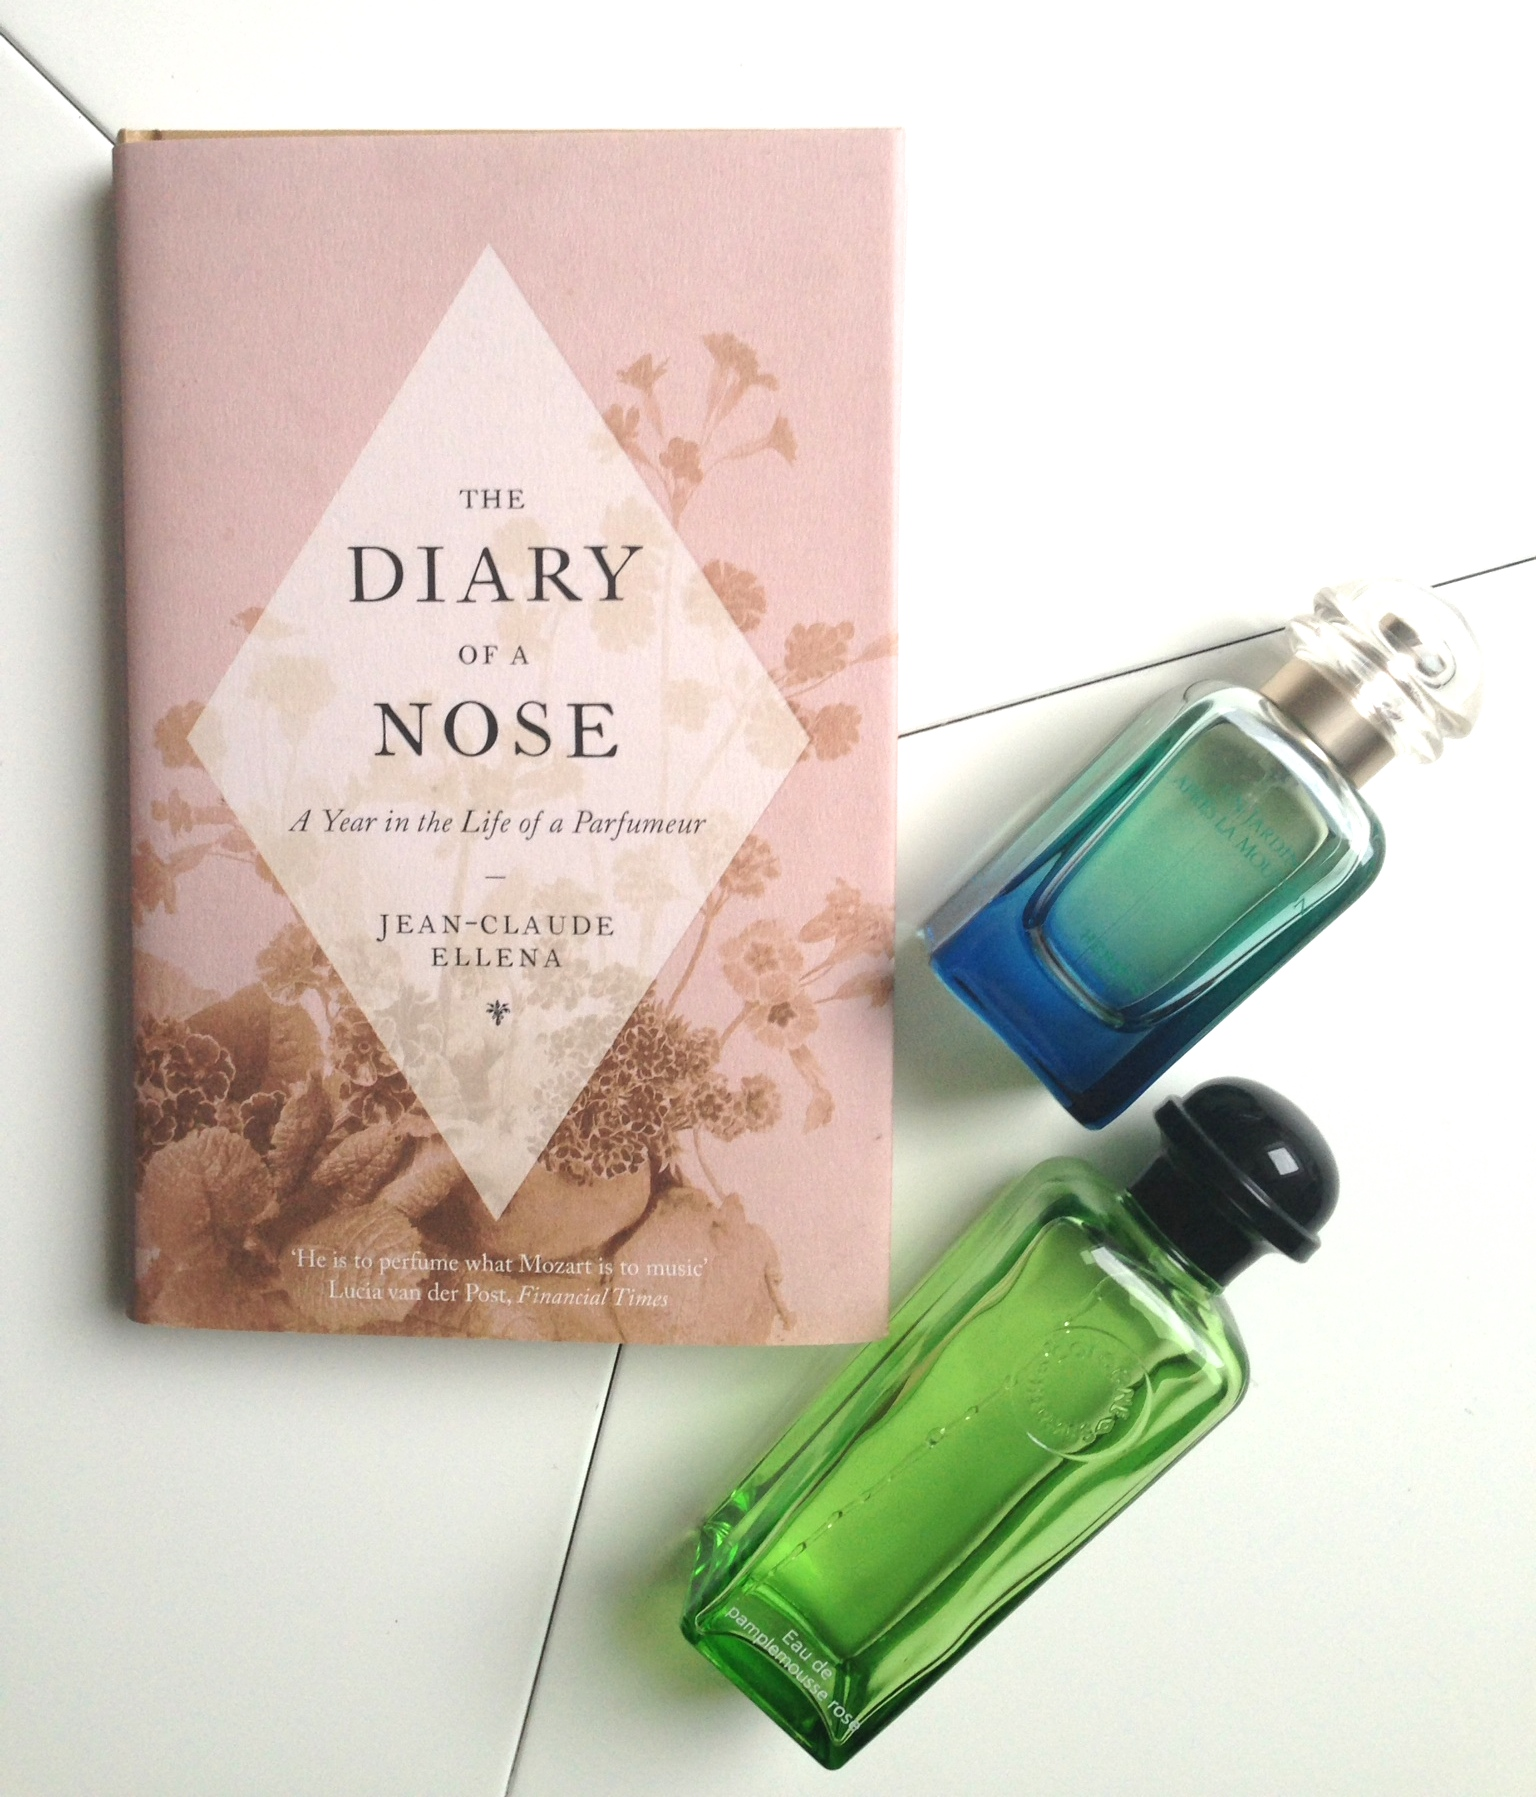 Jean Claude Ellena, The Diary of a Nose